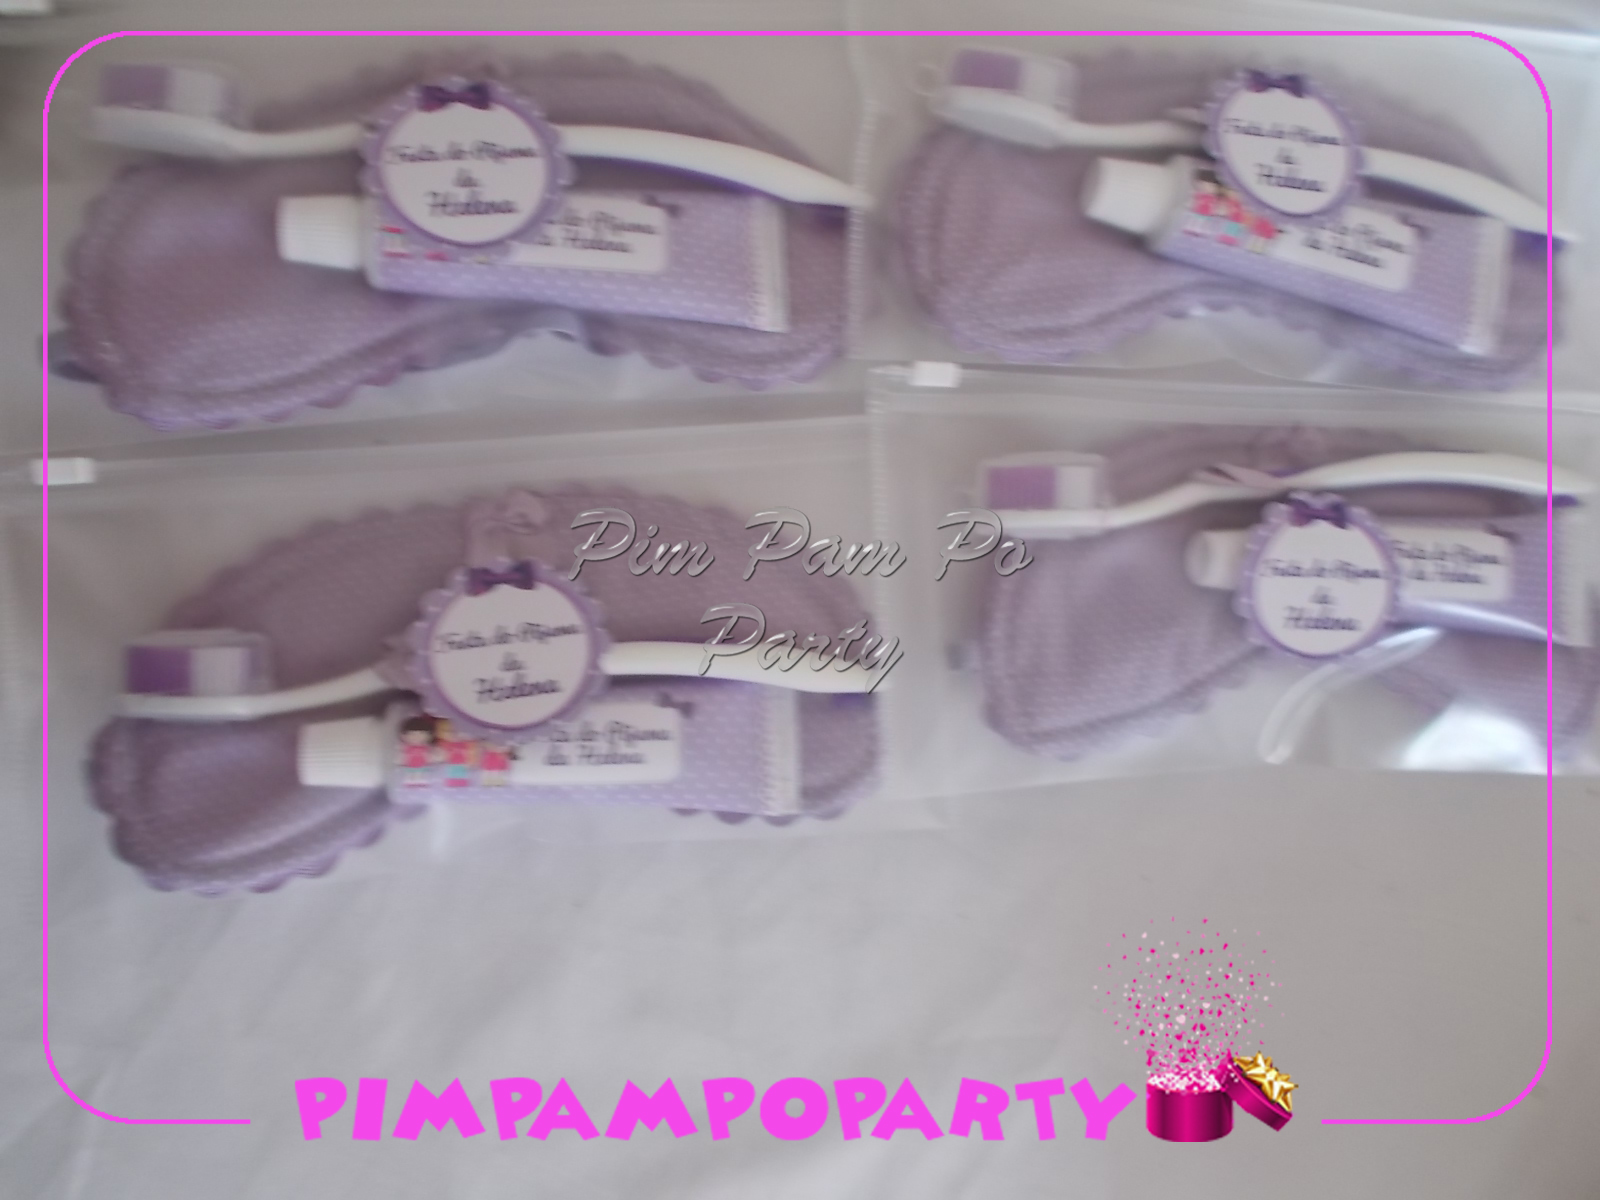 Aparato Dental Para Dormir Lembrancinha Festa Do Pijama Kit Higiene Pimpampoparty